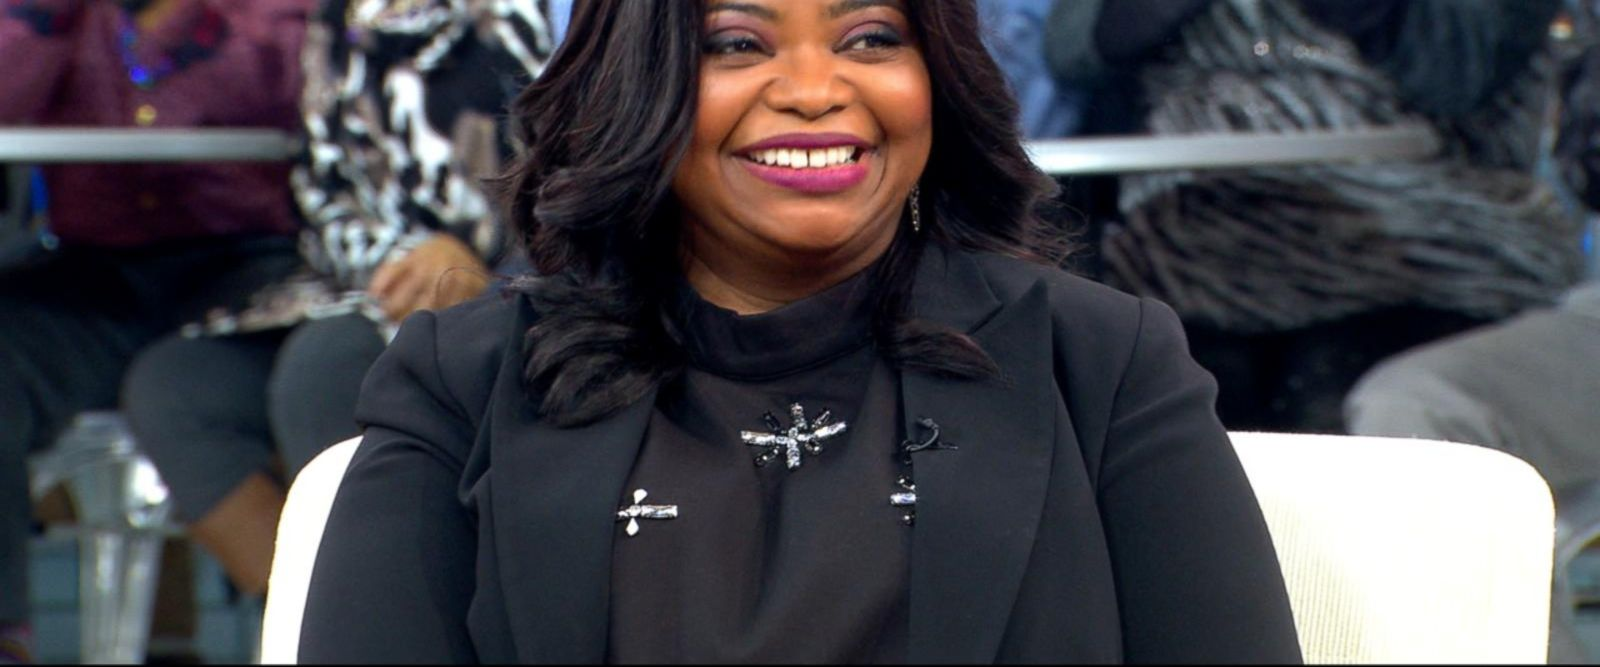 VIDEO: Octavia Spencer opens up about Oscars night and 'The Shack'